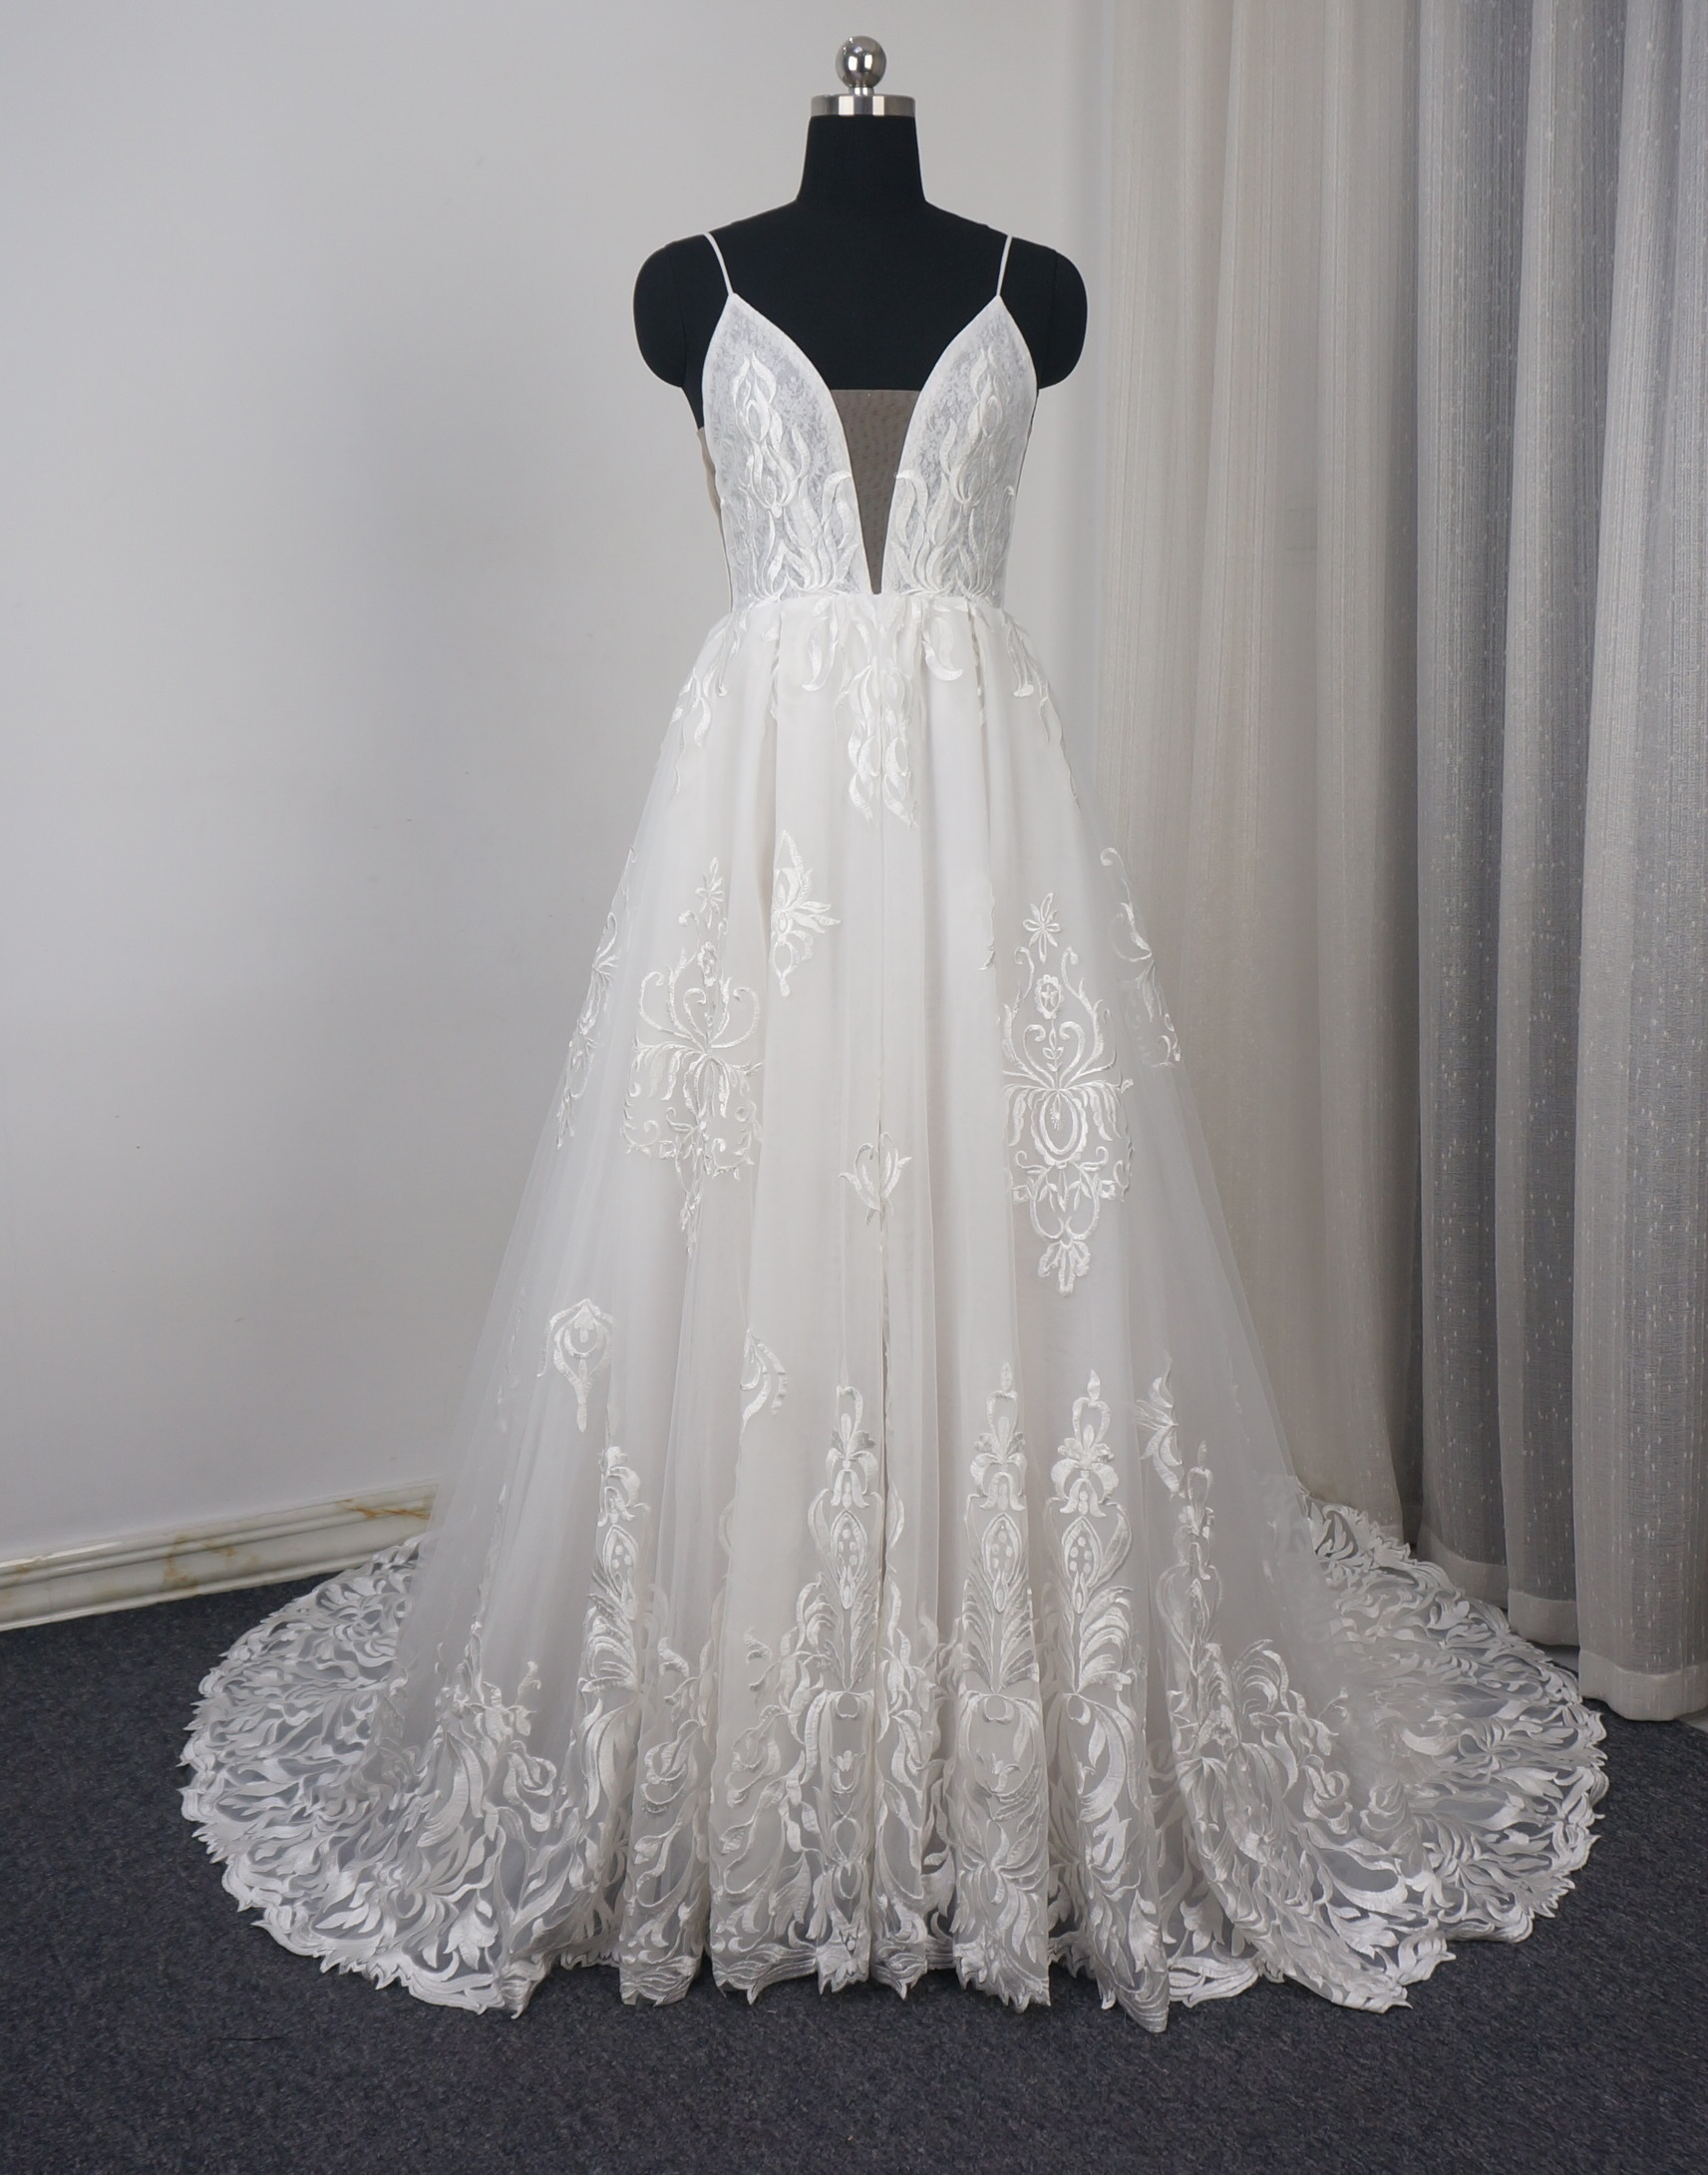 size 40 top quality really comfortable Lace spaghetti strap wedding dresses 2019 with lace medallions.